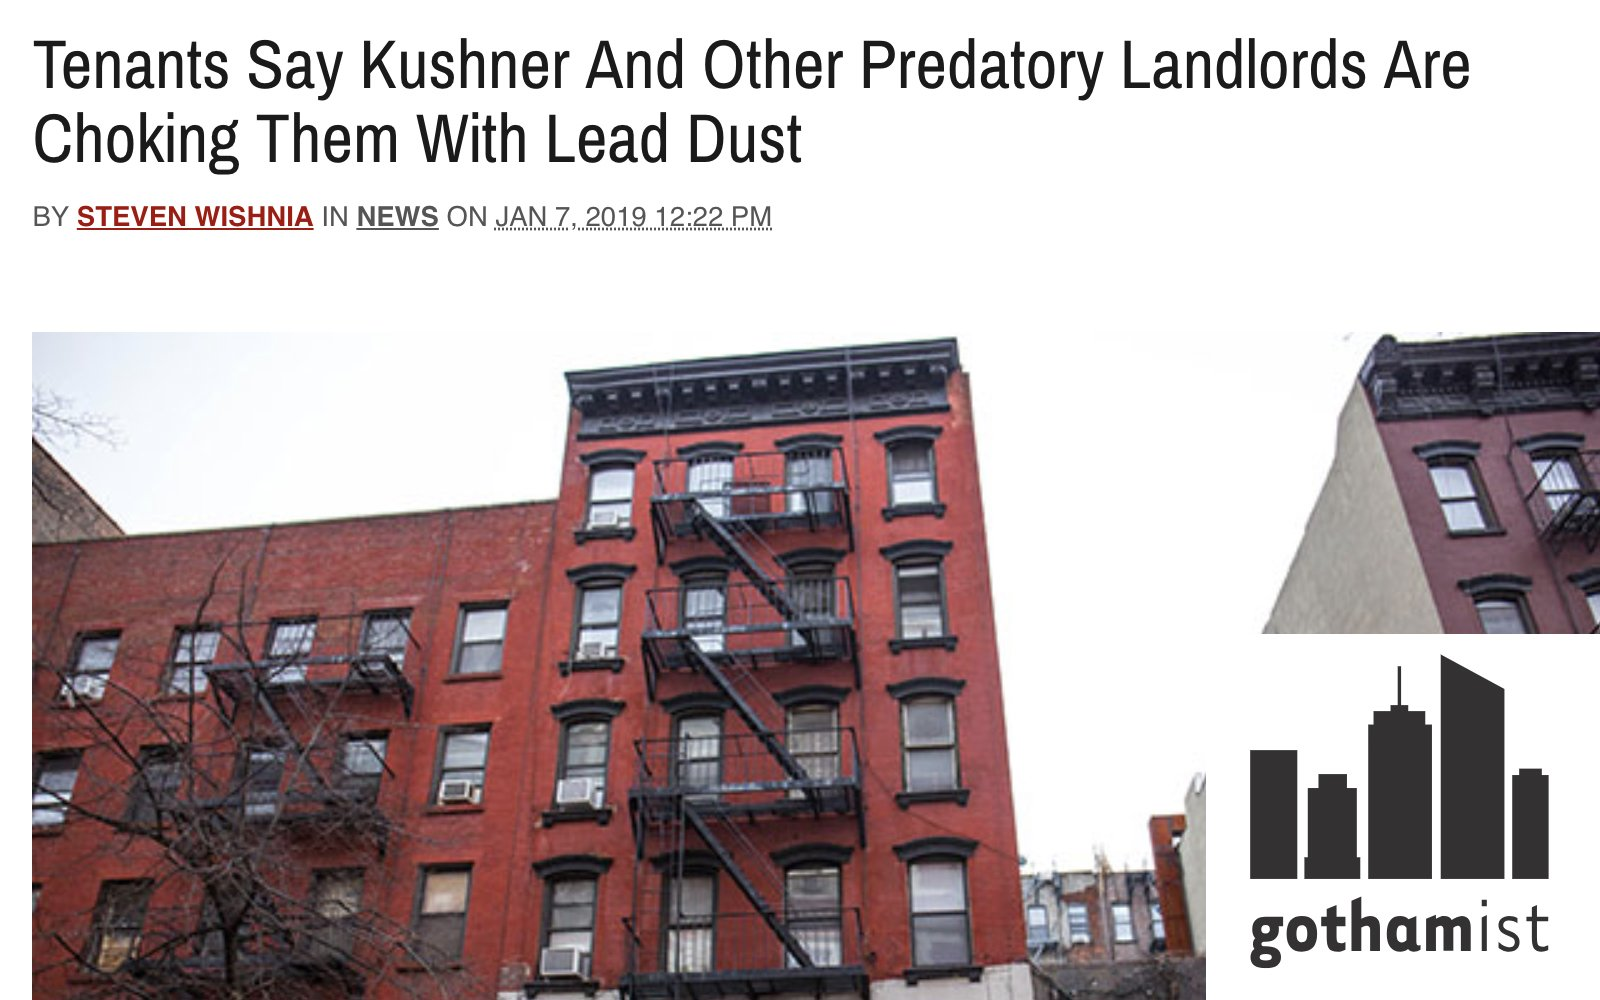 """Image shows Gothamist story on lead and """"predatory landlords"""""""